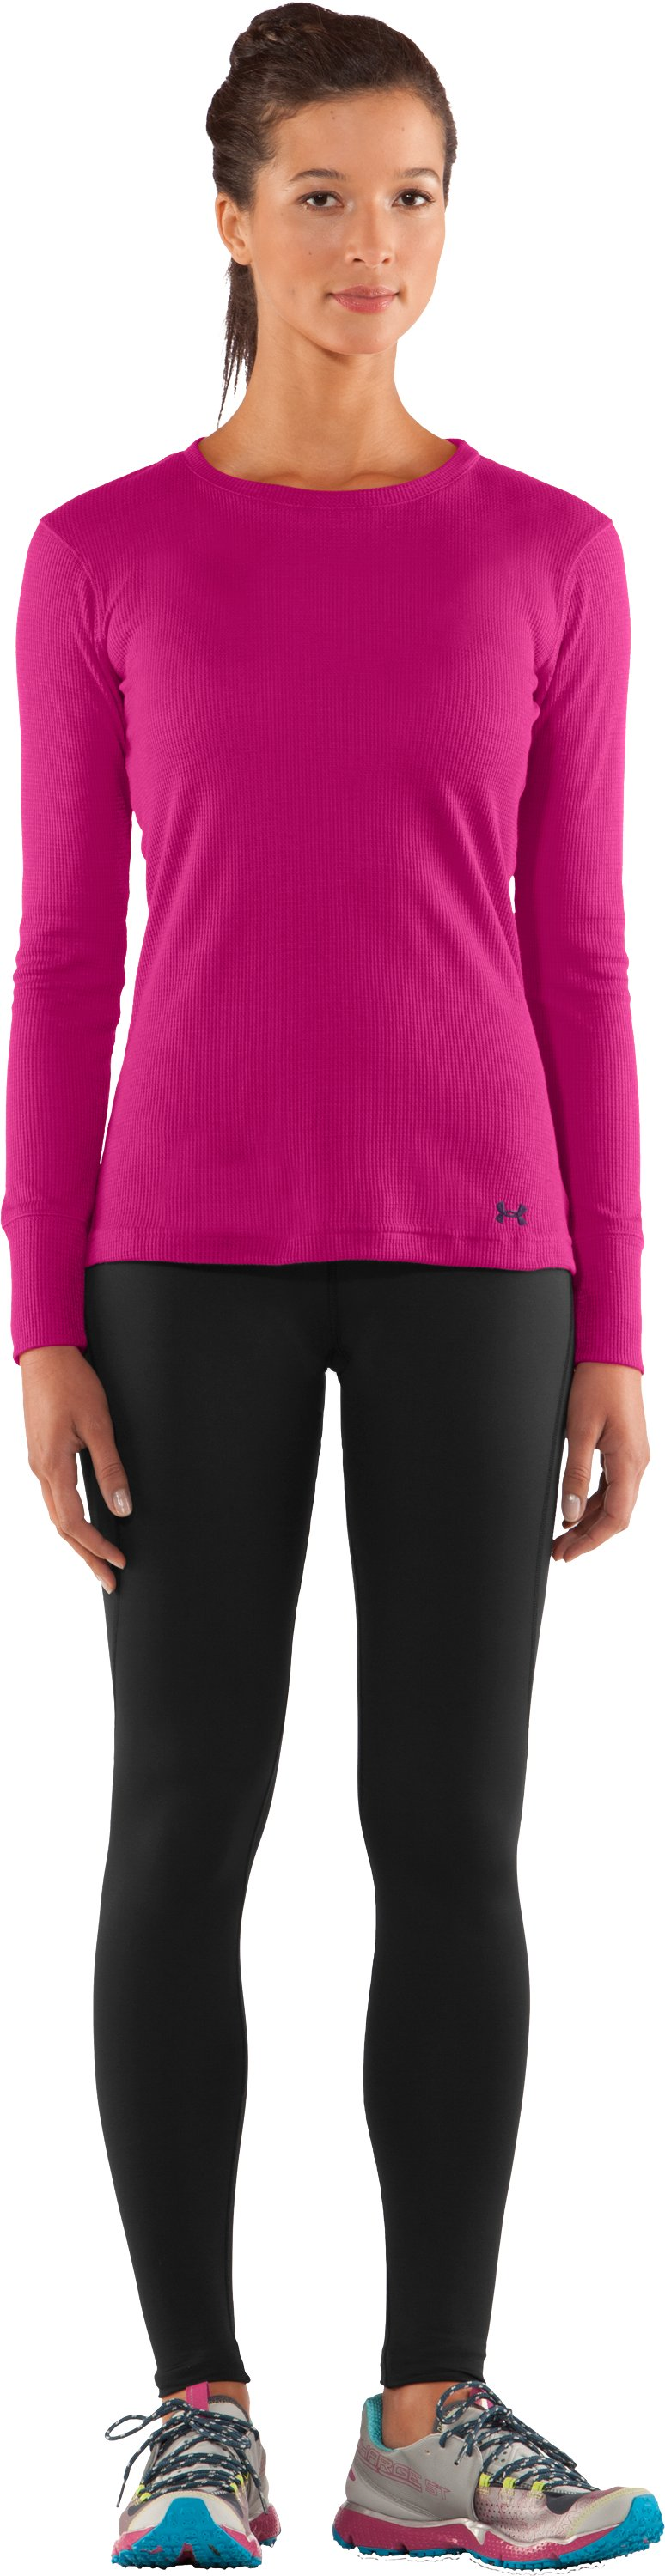 Women's Waffle Long Sleeve Crew Neck, Honeysuckle